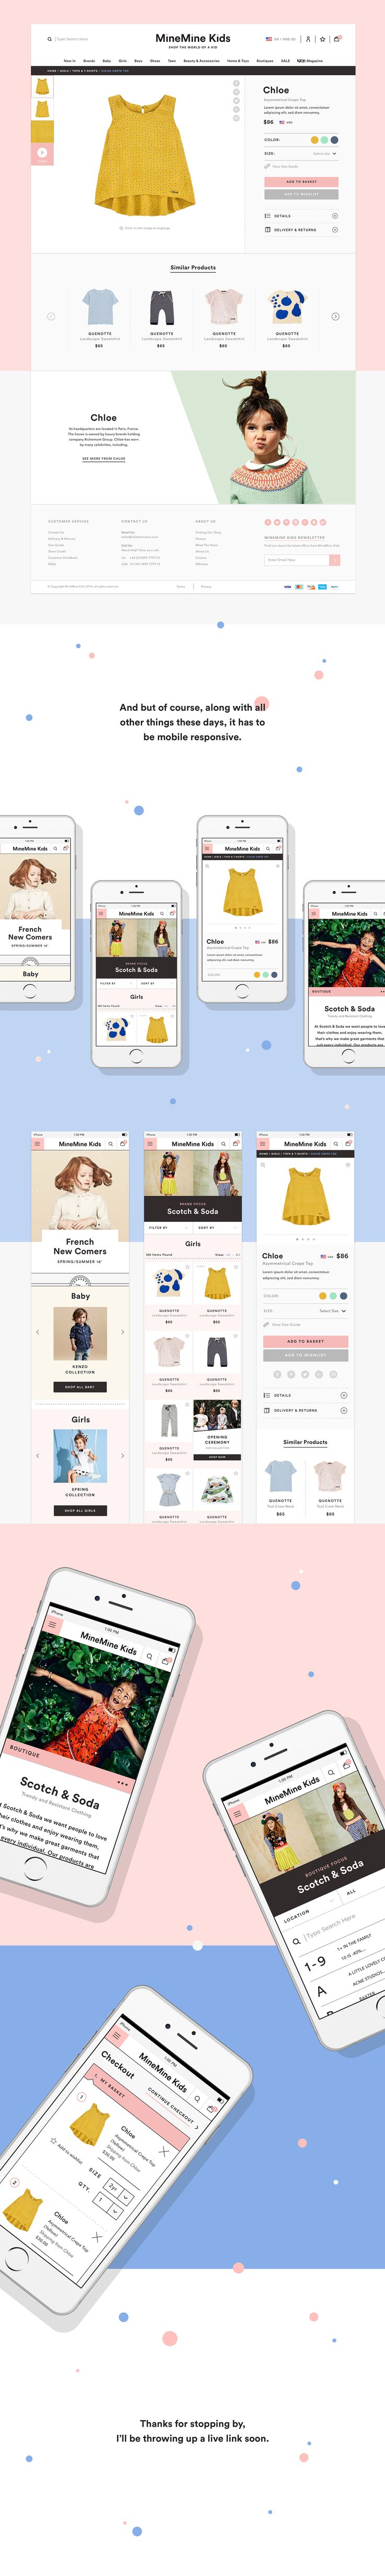 MineMine Kids is an online department store for kids where you can shop anything from clothing to toys and homegoods.Project Date: 2016